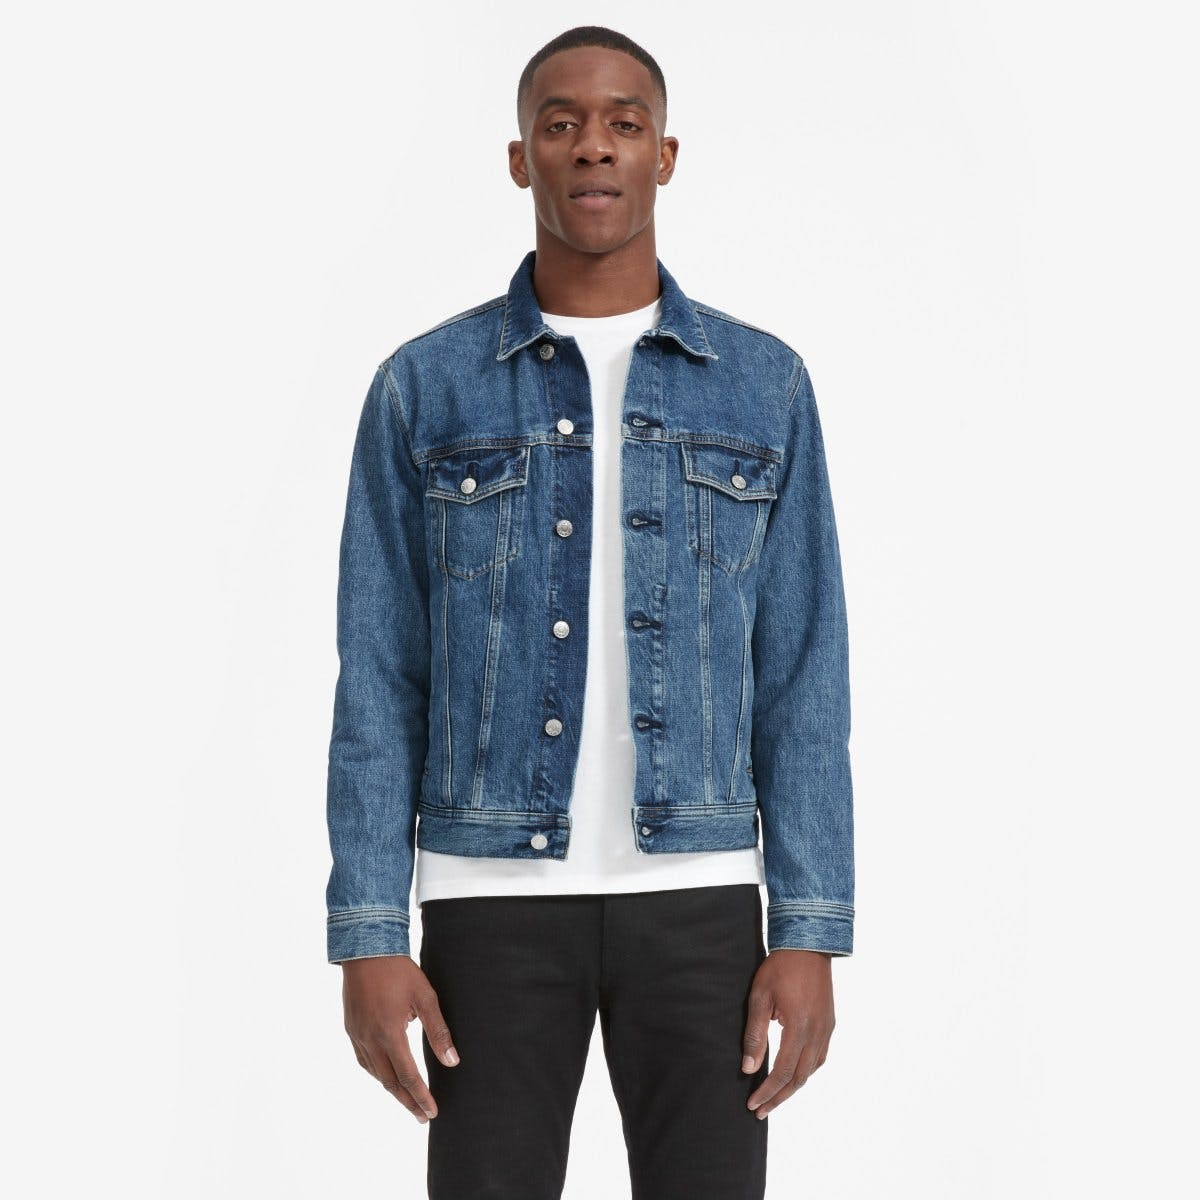 everlane, everlane jeans, everlane denim, japanese denim, denim jacket, jean jacket, trucker jacket, denimblog, denim blog